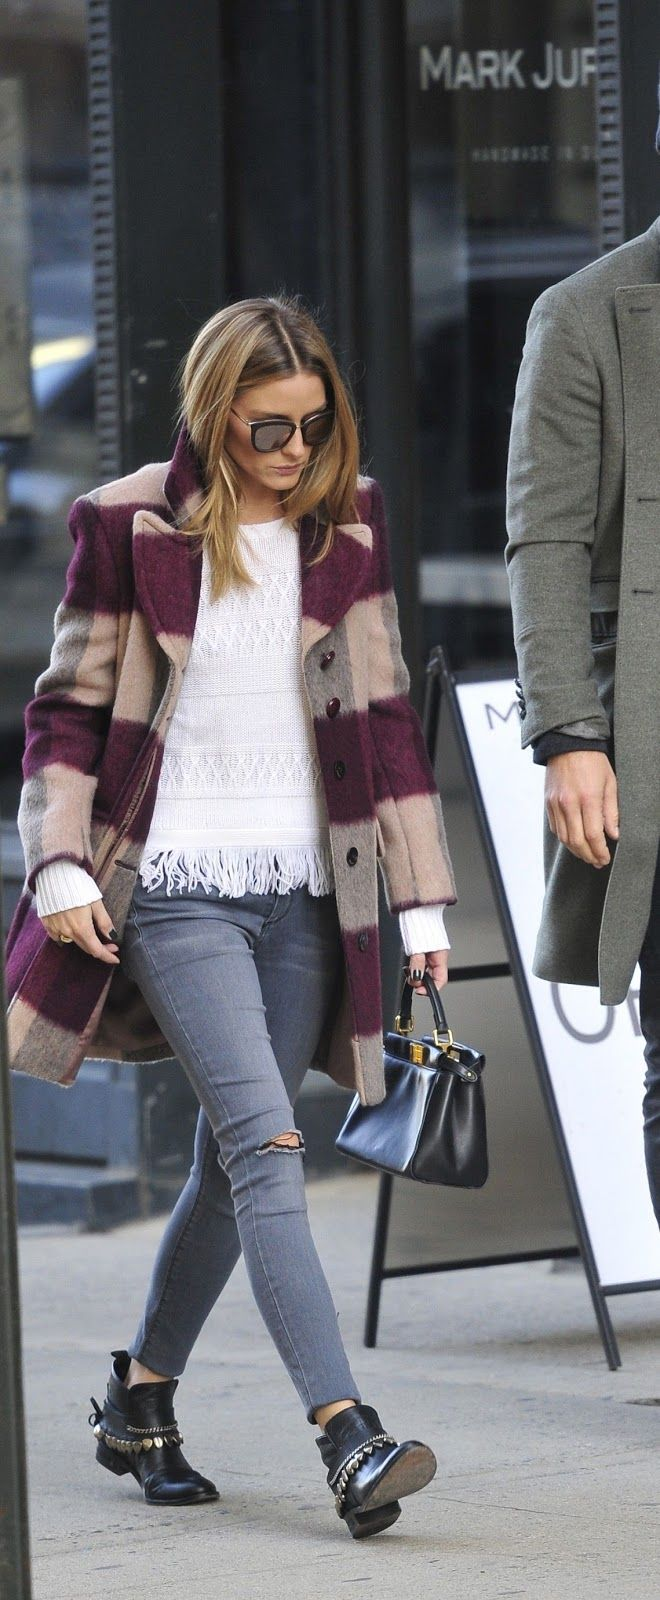 olivia-palermo-autumn-style-in-a-wool-coat-while-out-in-new-york-11-12-2016-2.jpg (660×1600) Más